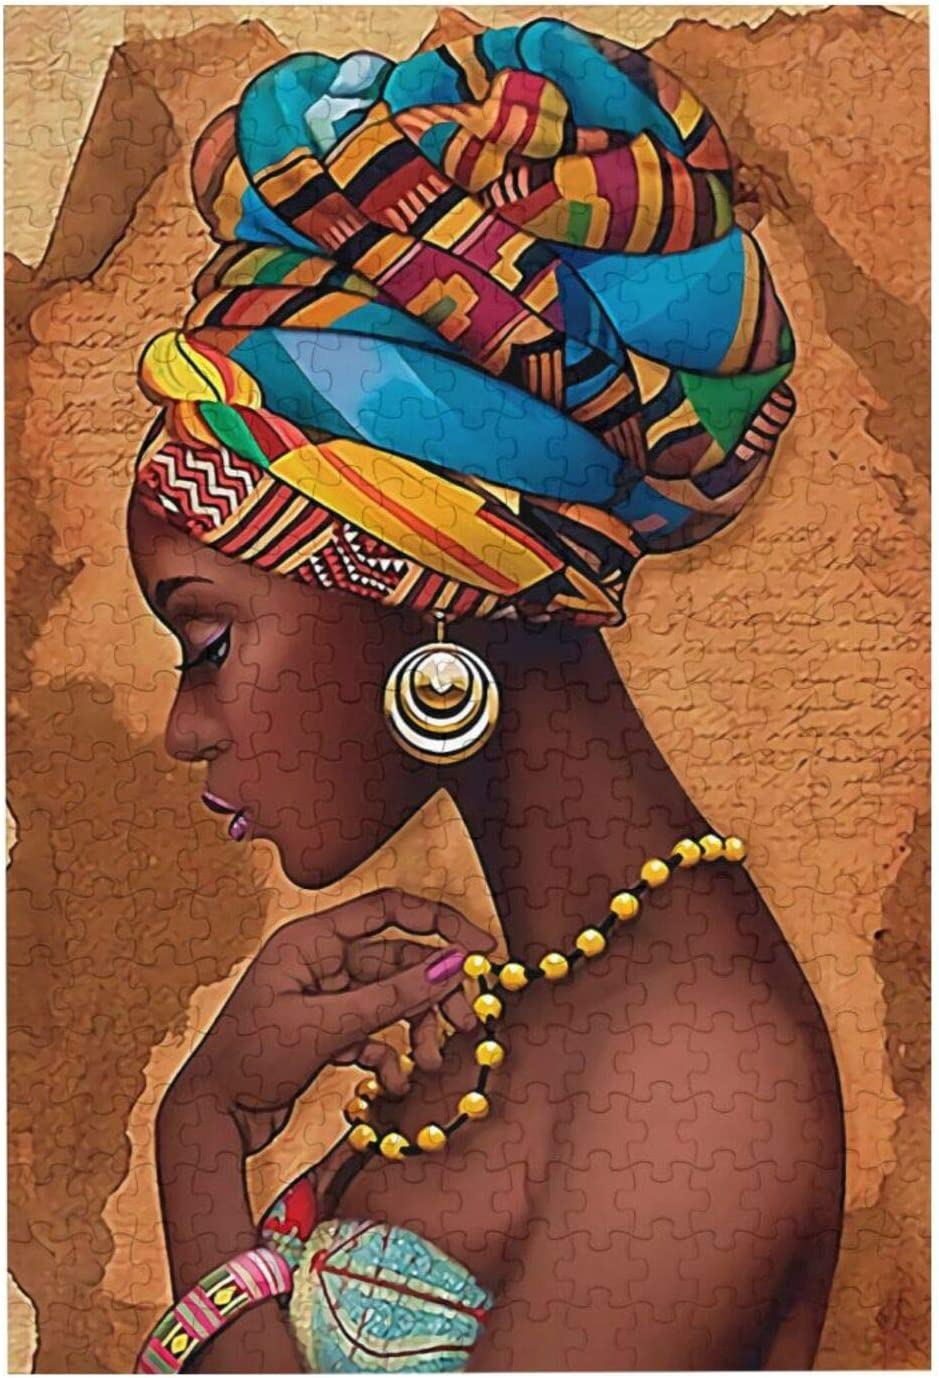 Black Woman African American Girls Jigsaw Puzzles for Adults Children Family Game Gift Home Wall Decor 300pcs Puzzle